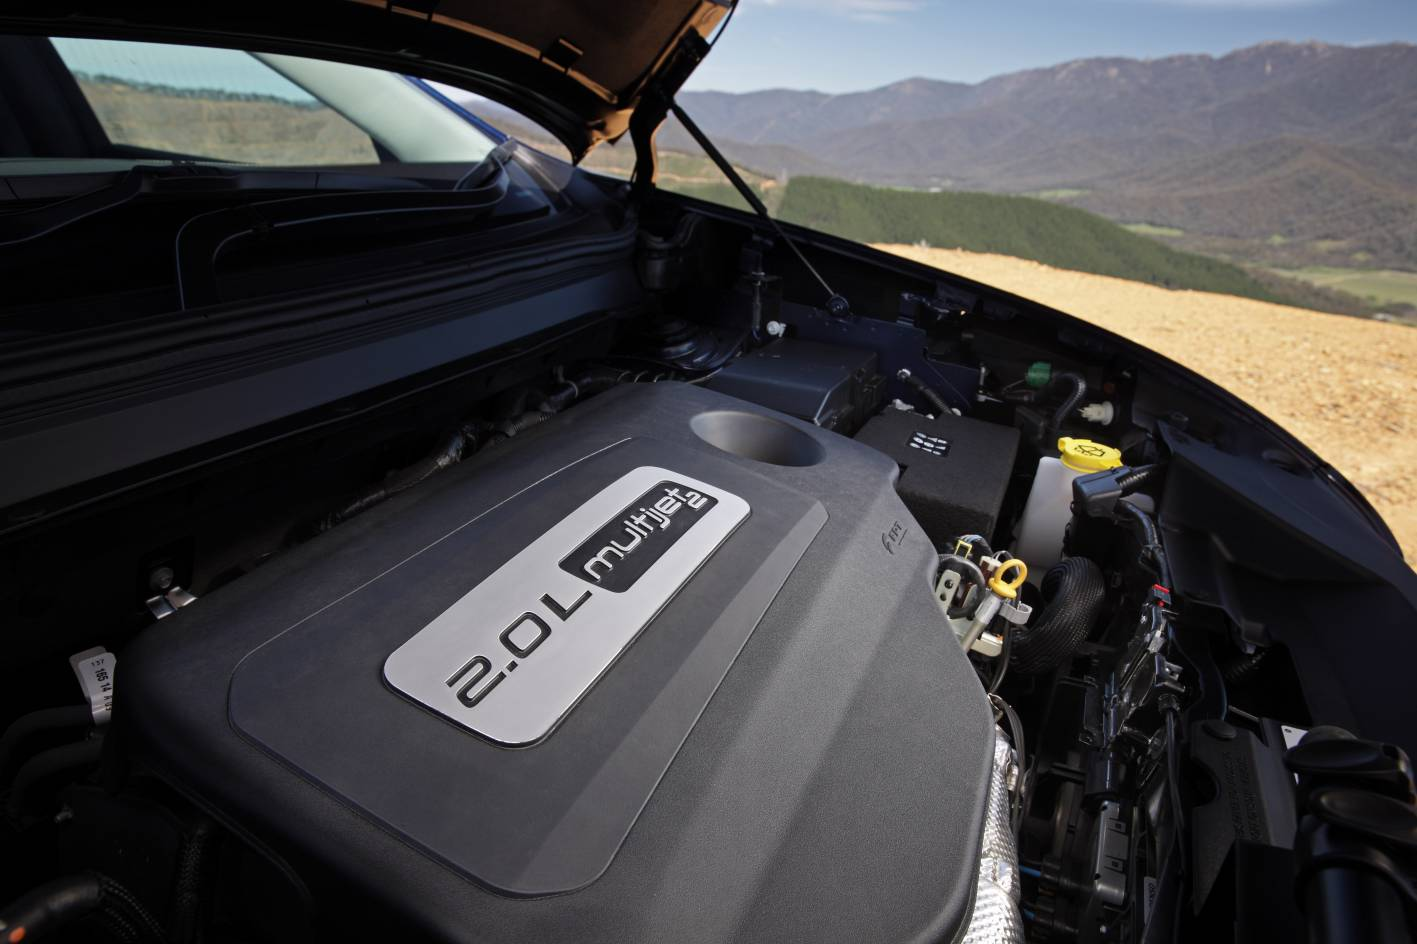 Jeep Cherokee 2.0-litre diesel can't match Hyundai Santa Fe, and is only available in Cherokee Limited - at a $5k premium